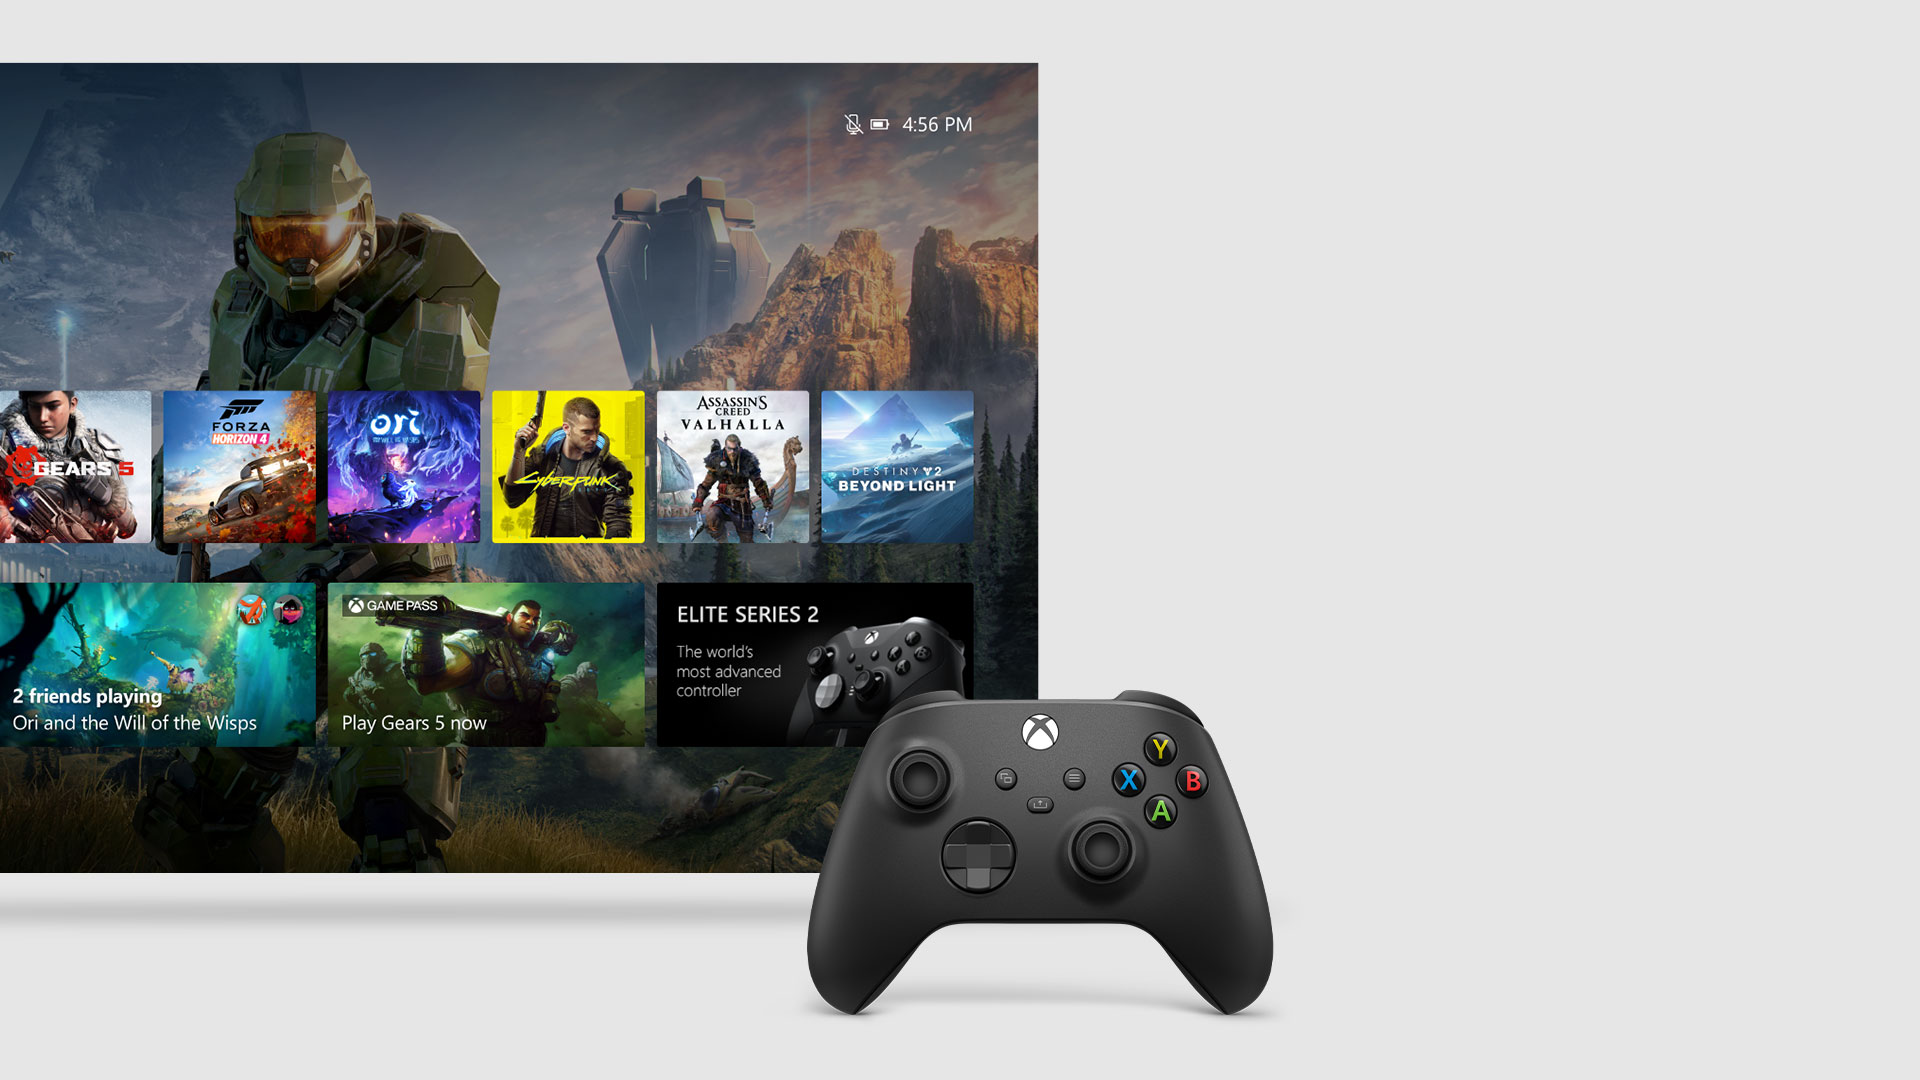 Xbox Series X Dash UI